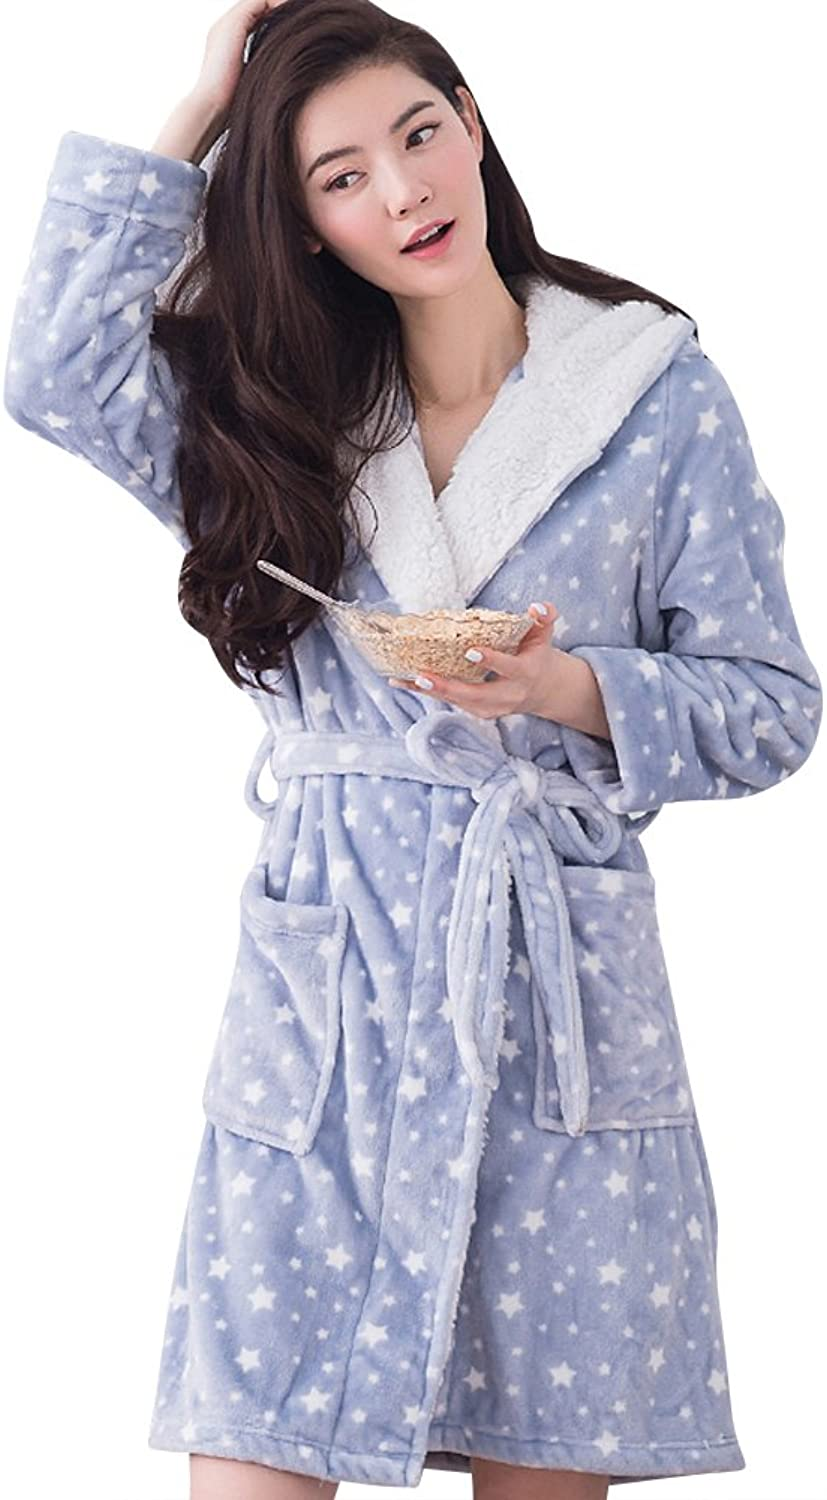 Evenika Stars Print Hooded Cute Fleece Flannel Pajama for Women Robes Bathrobe